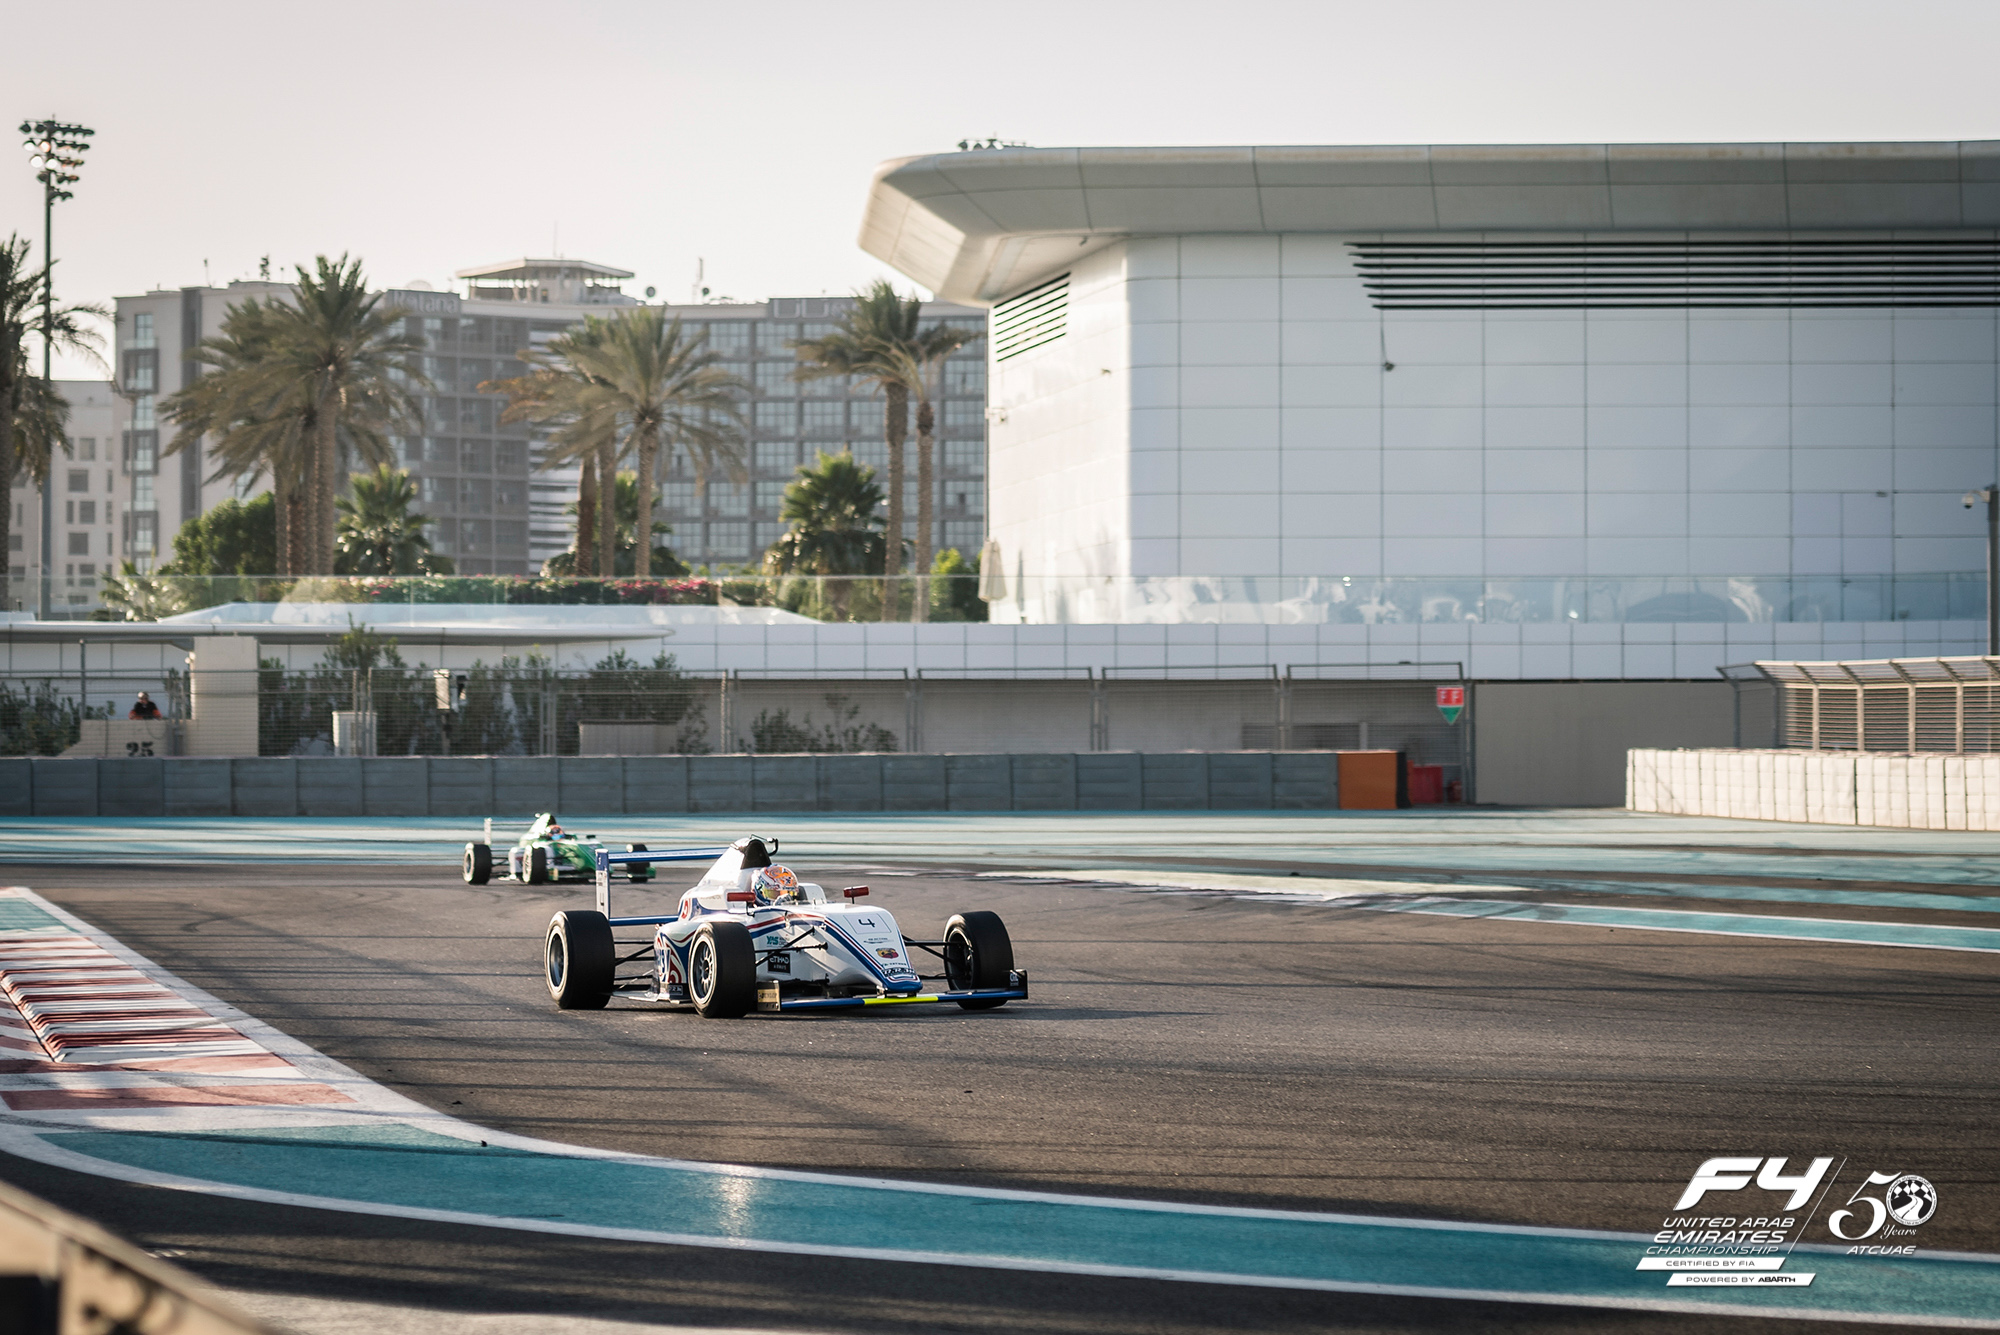 2016 12 18   F4 Second Roud   Abu Dhabi 32 Of 39